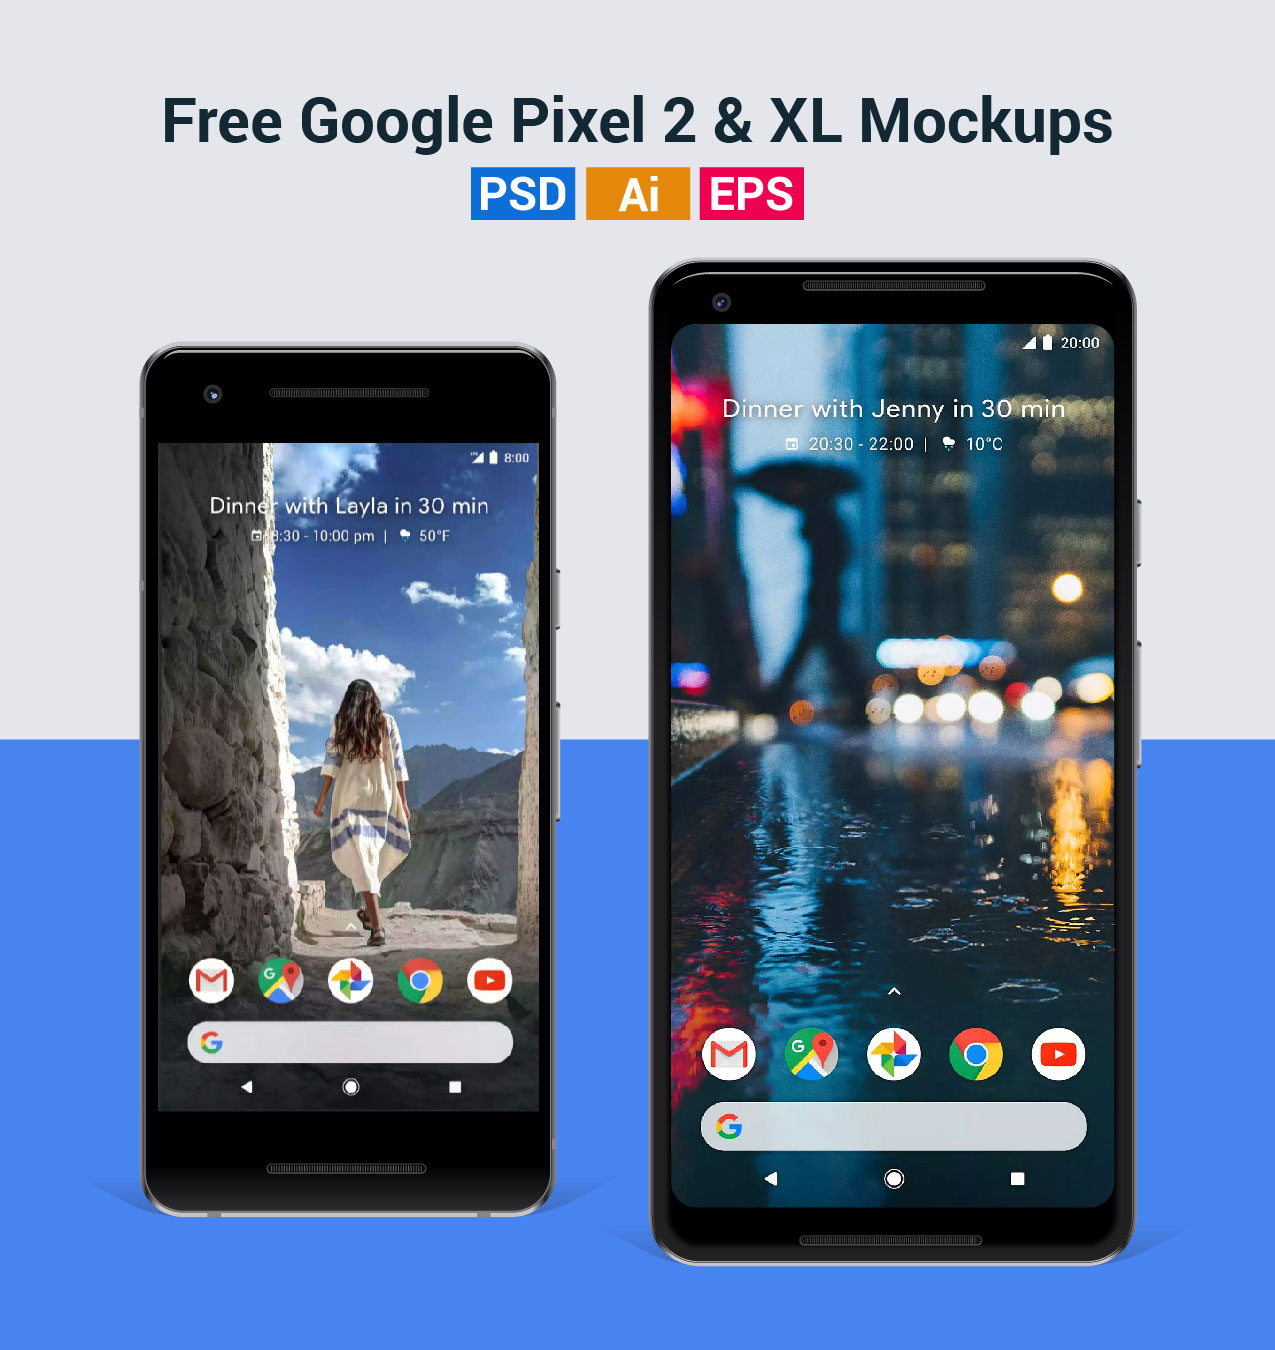 Free-Vector-Google-Pixel-2-&-Pixel-2-XL-Mockup-in-Ai-EPS-PSD